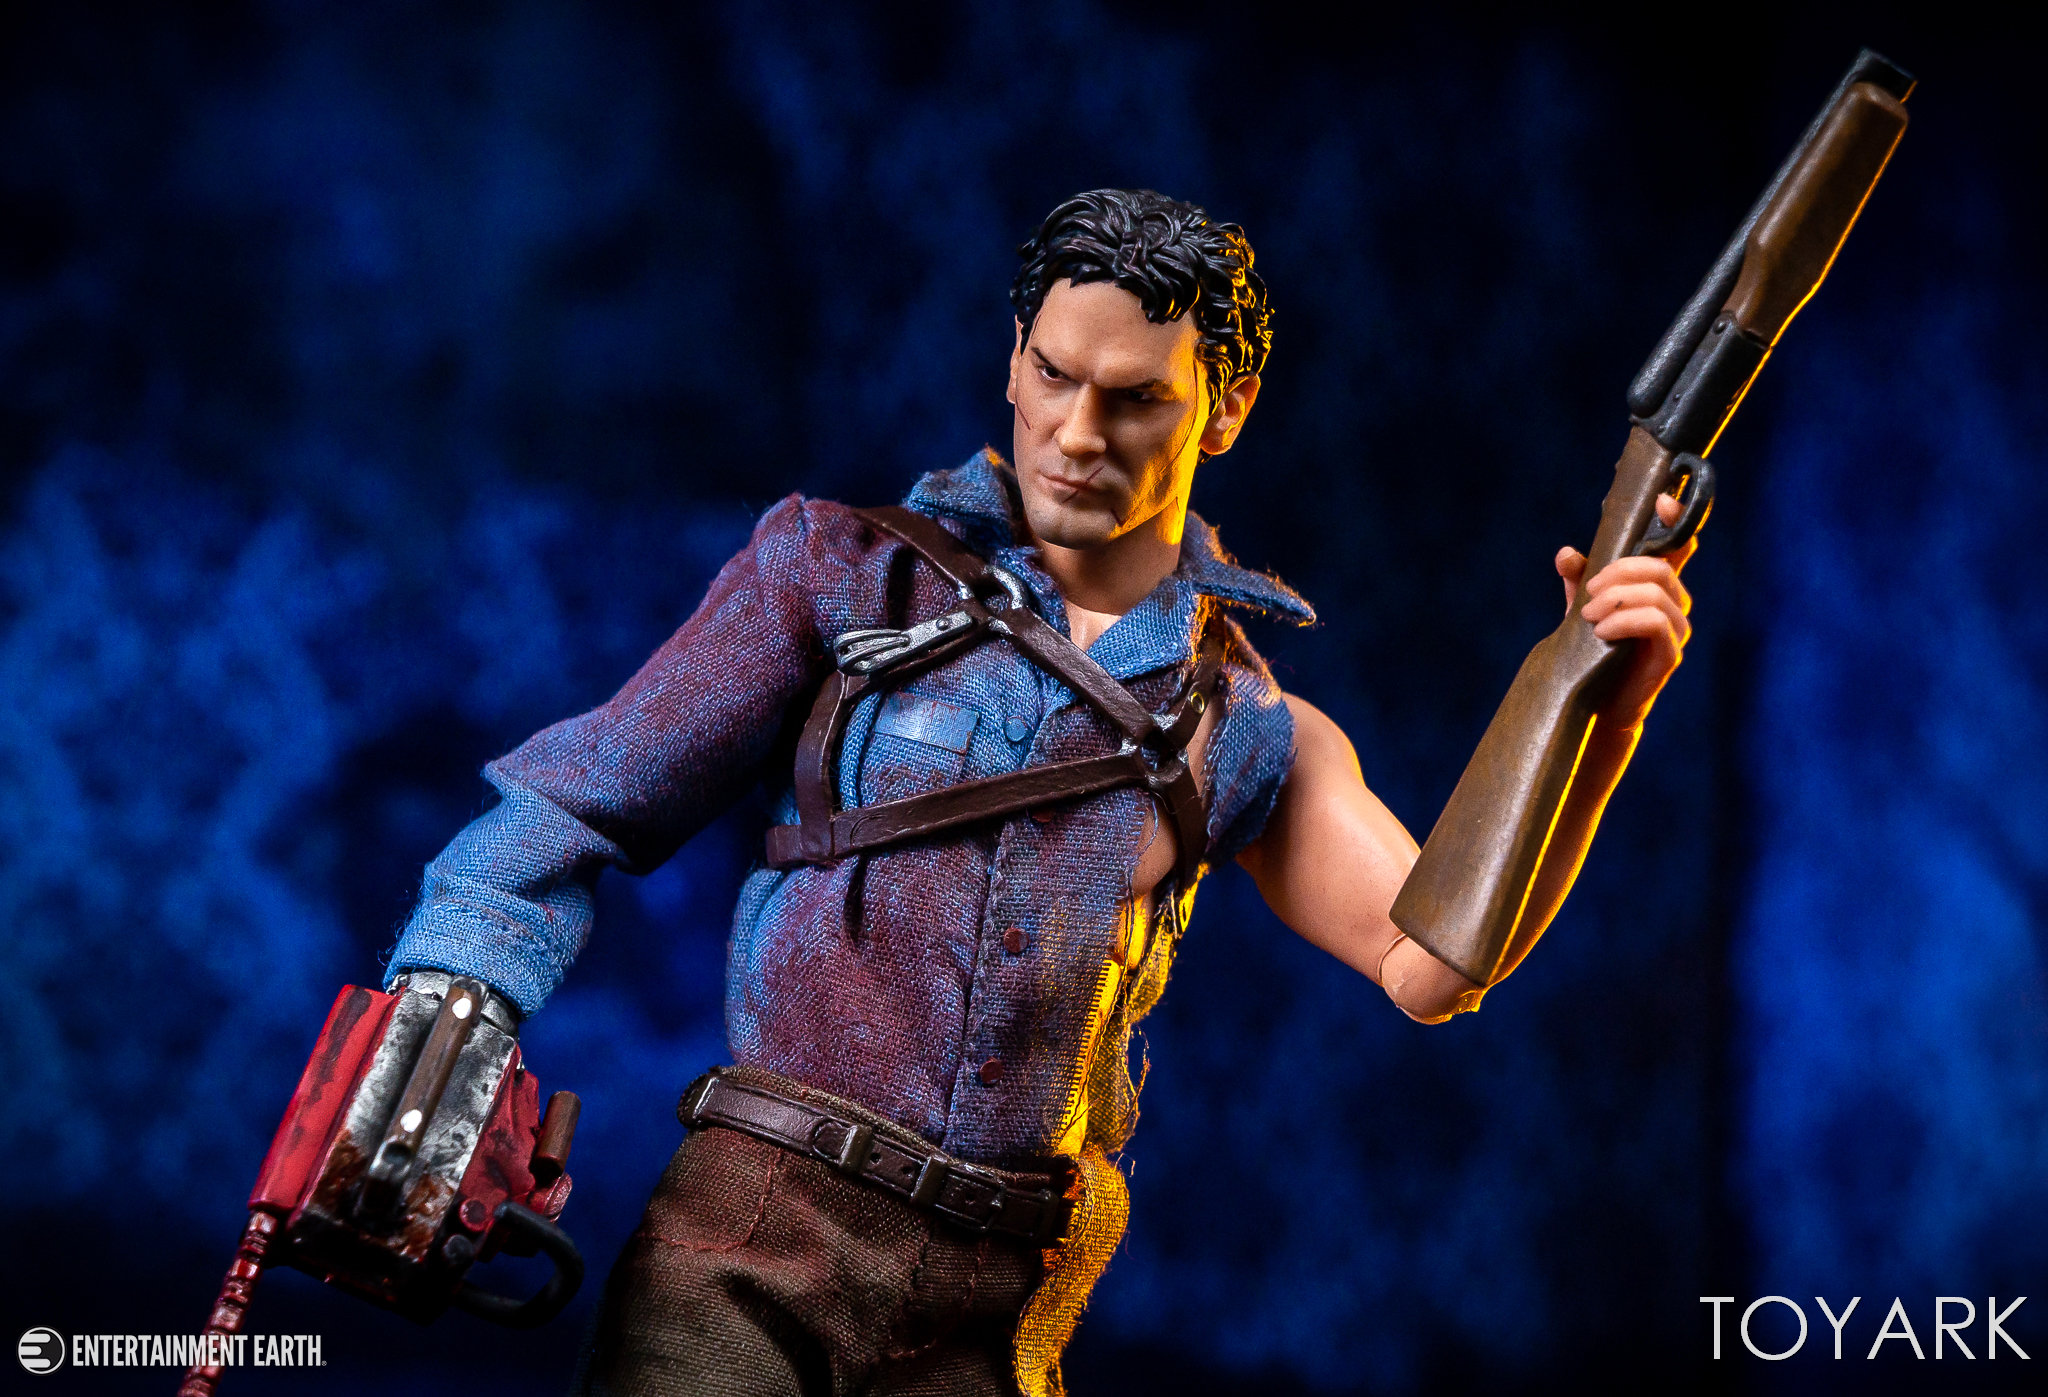 https://news.toyark.com/wp-content/uploads/sites/4/2019/01/Mezco-One12-Evil-Dead-2-Ash-022.jpg